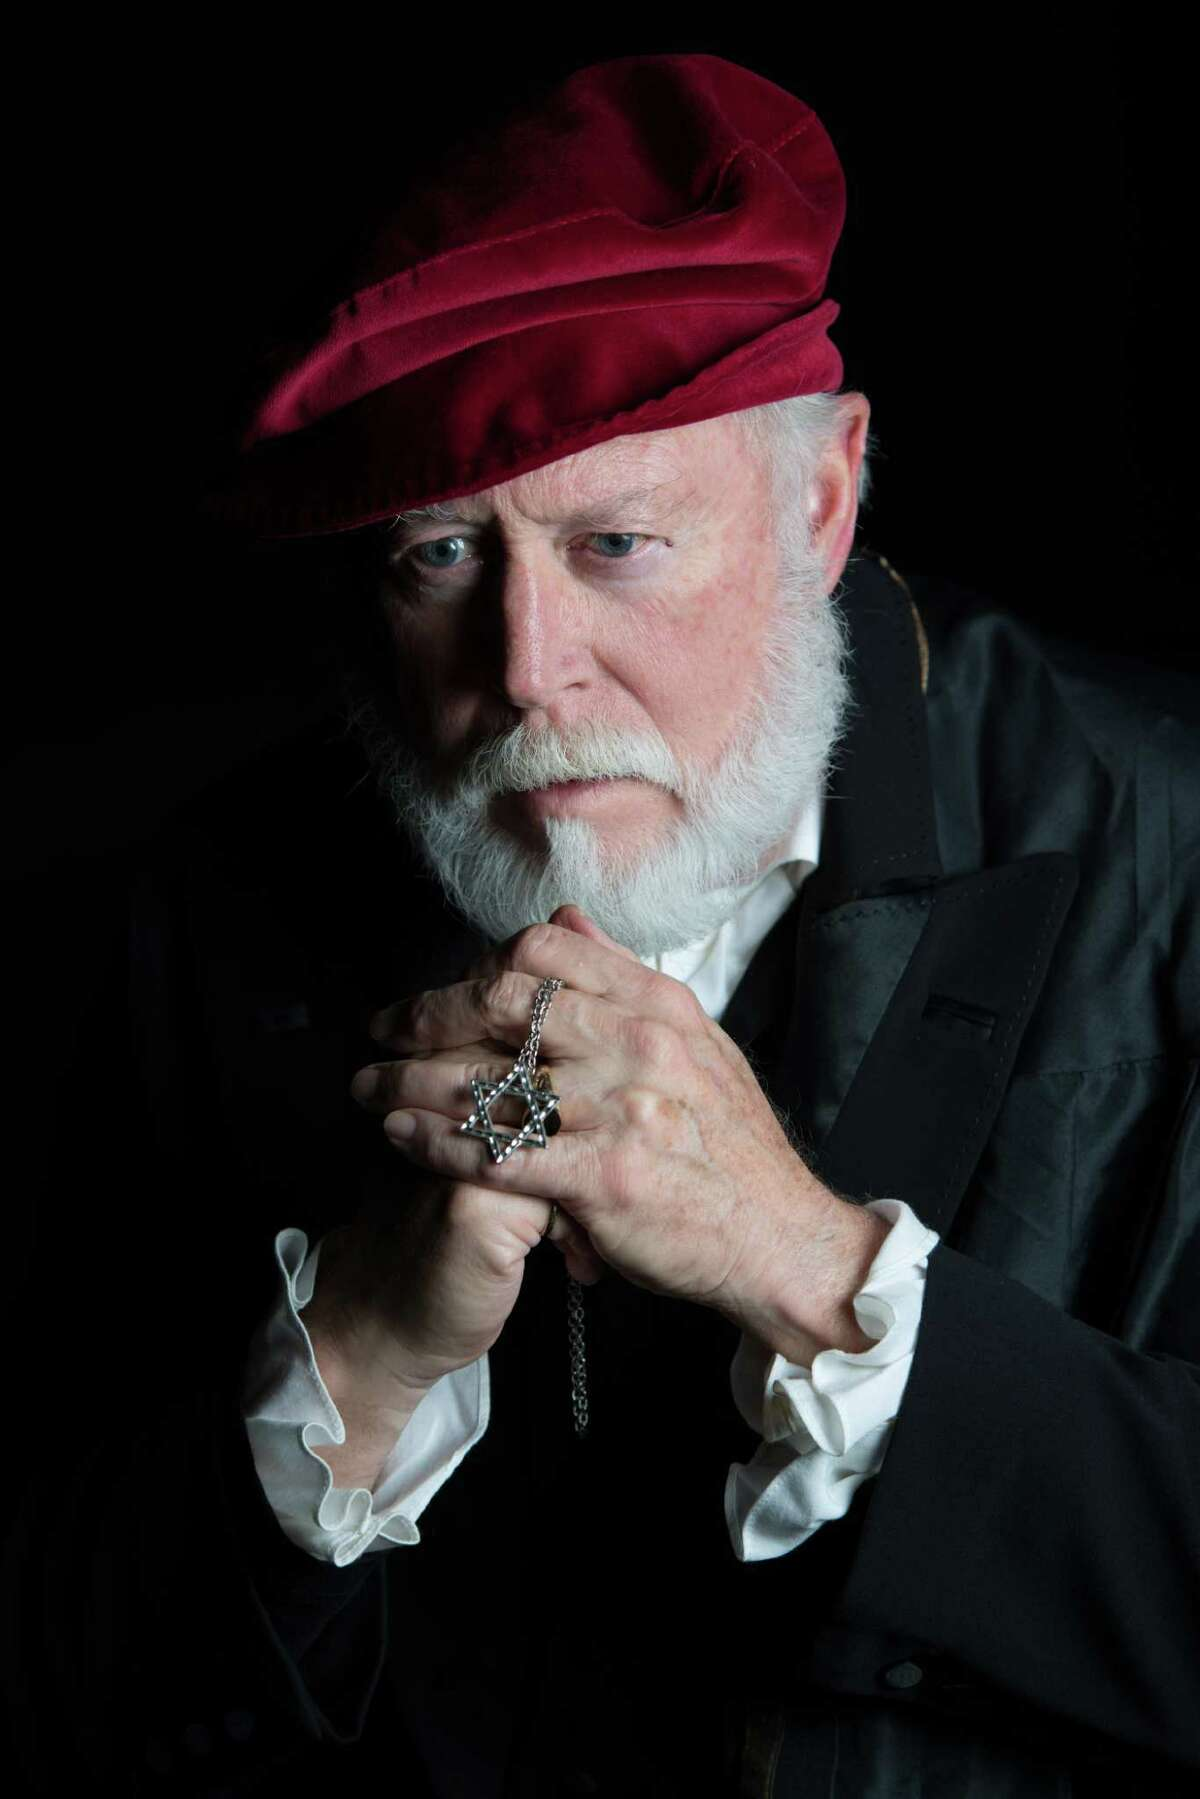 Allan S. Ross played Shylock in Classic Theatre's staging of